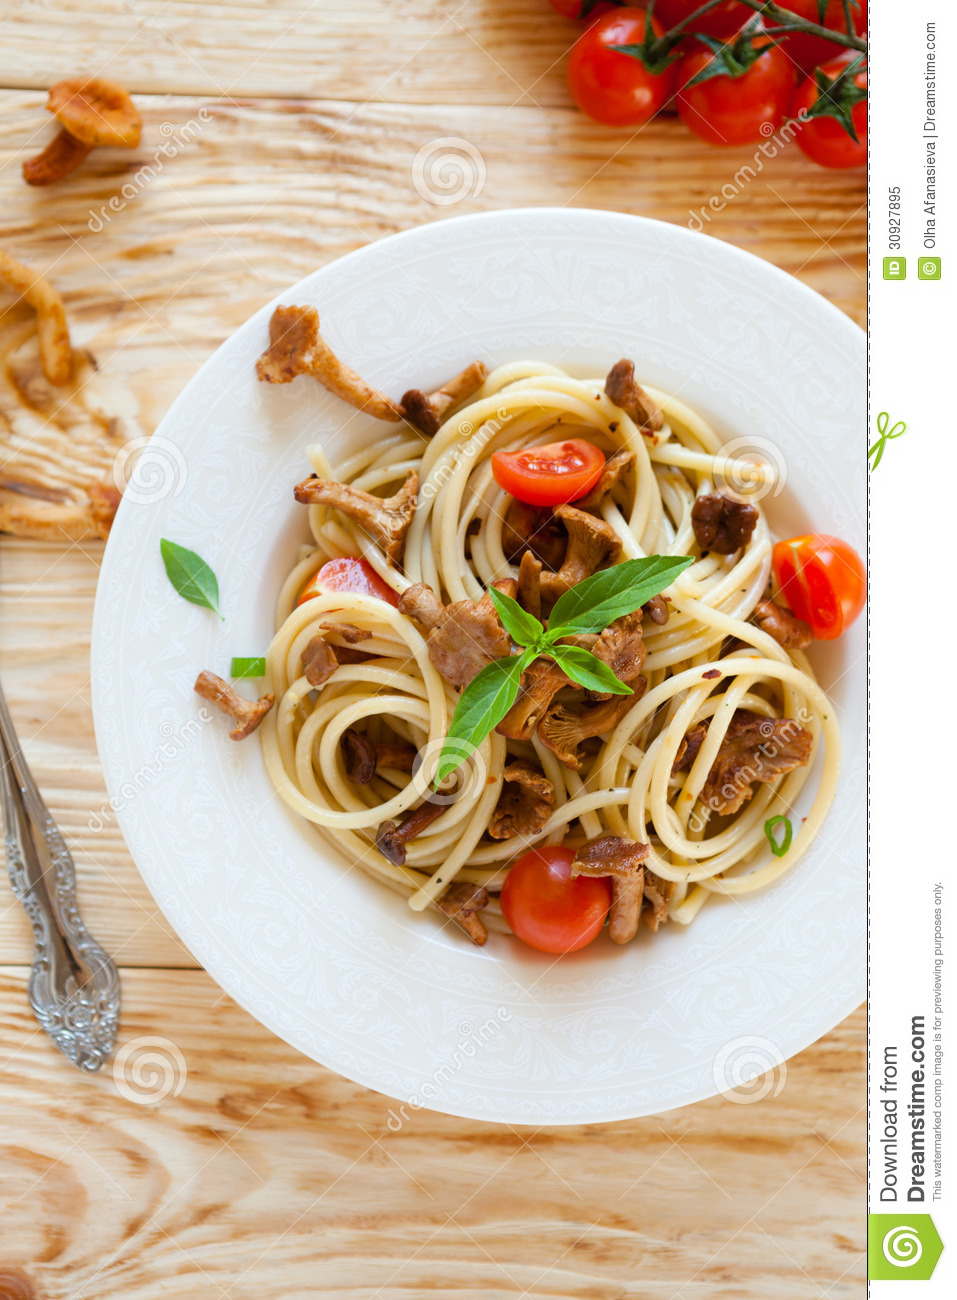 Pasta With Chanterelle Mushrooms, Top View Royalty Free ...